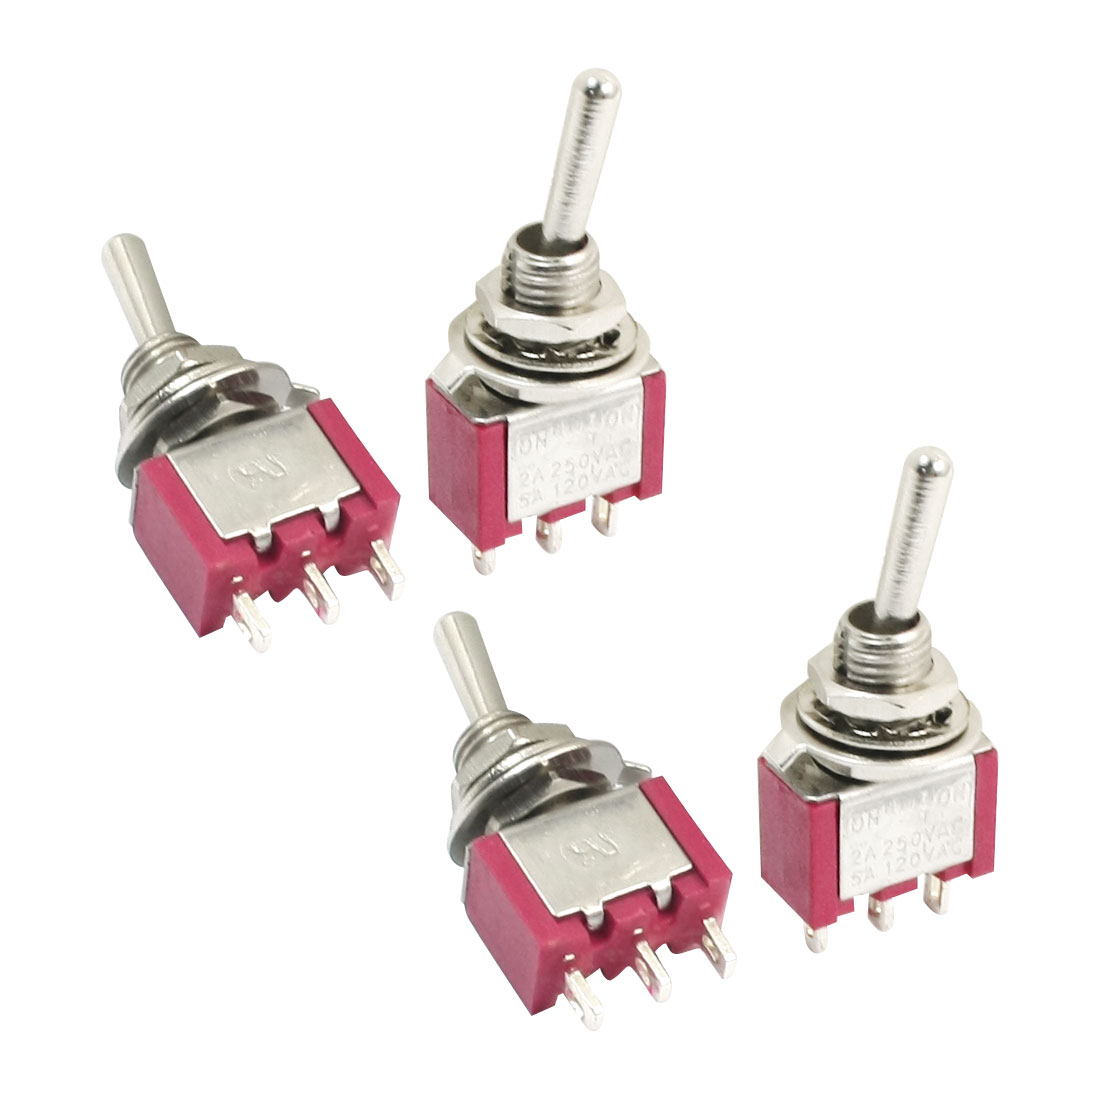 NO NC SPDT ON-ON 2 Position Locking Electric Toggle Switch AC 120V 5A Red 4pcs